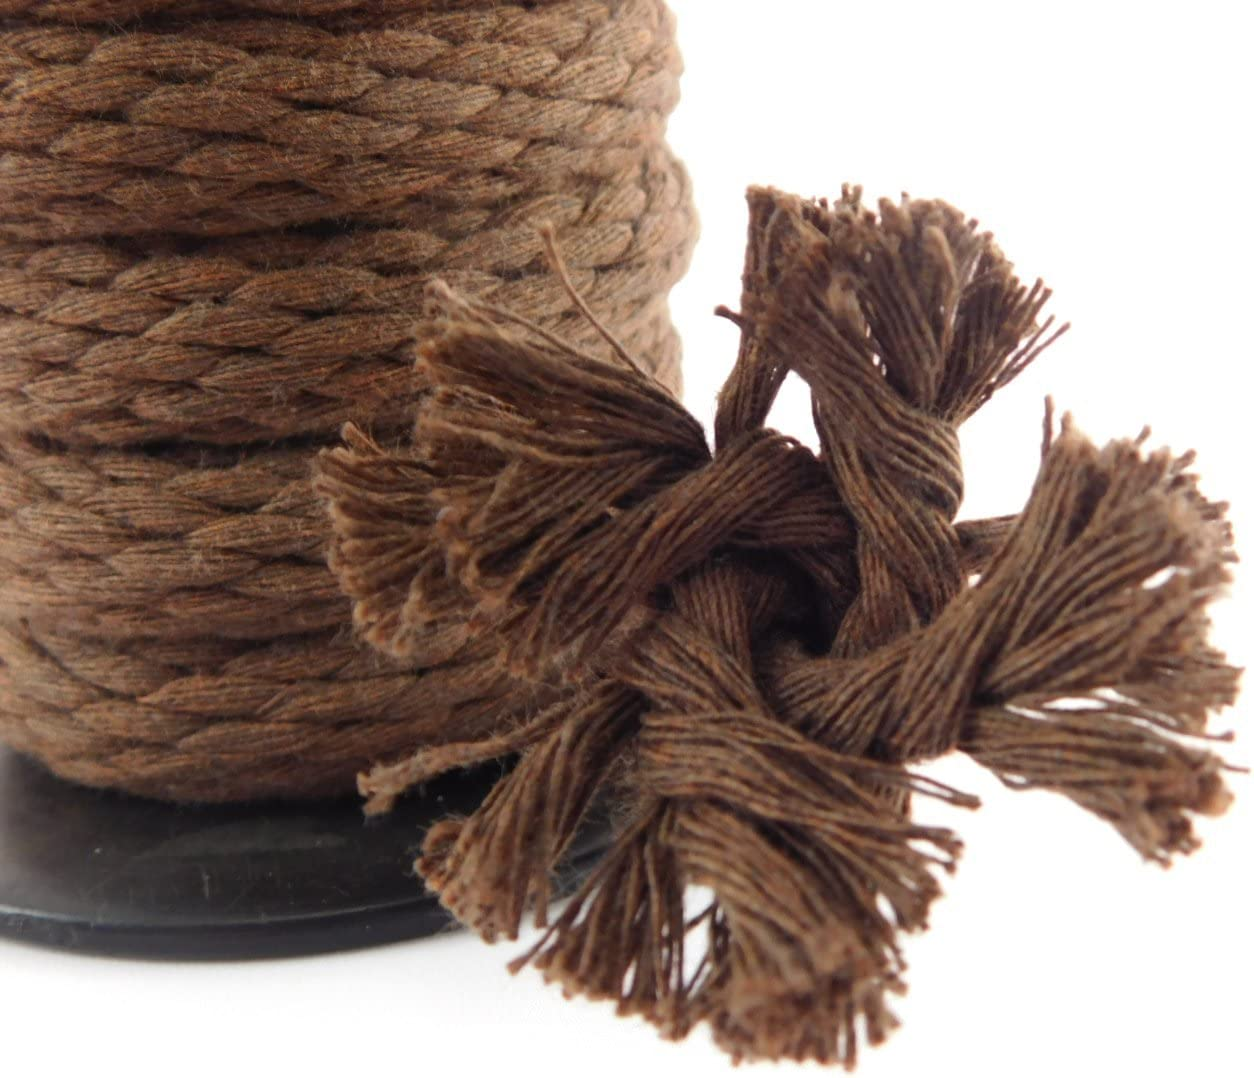 Tan Variety of Colors and Lengths Utility Rope and More | Made in The USA Macrame Projects Ravenox Solid Braid Cotton Rope | Clothesline Used as Sash Cord 1//2-in x 10 FT